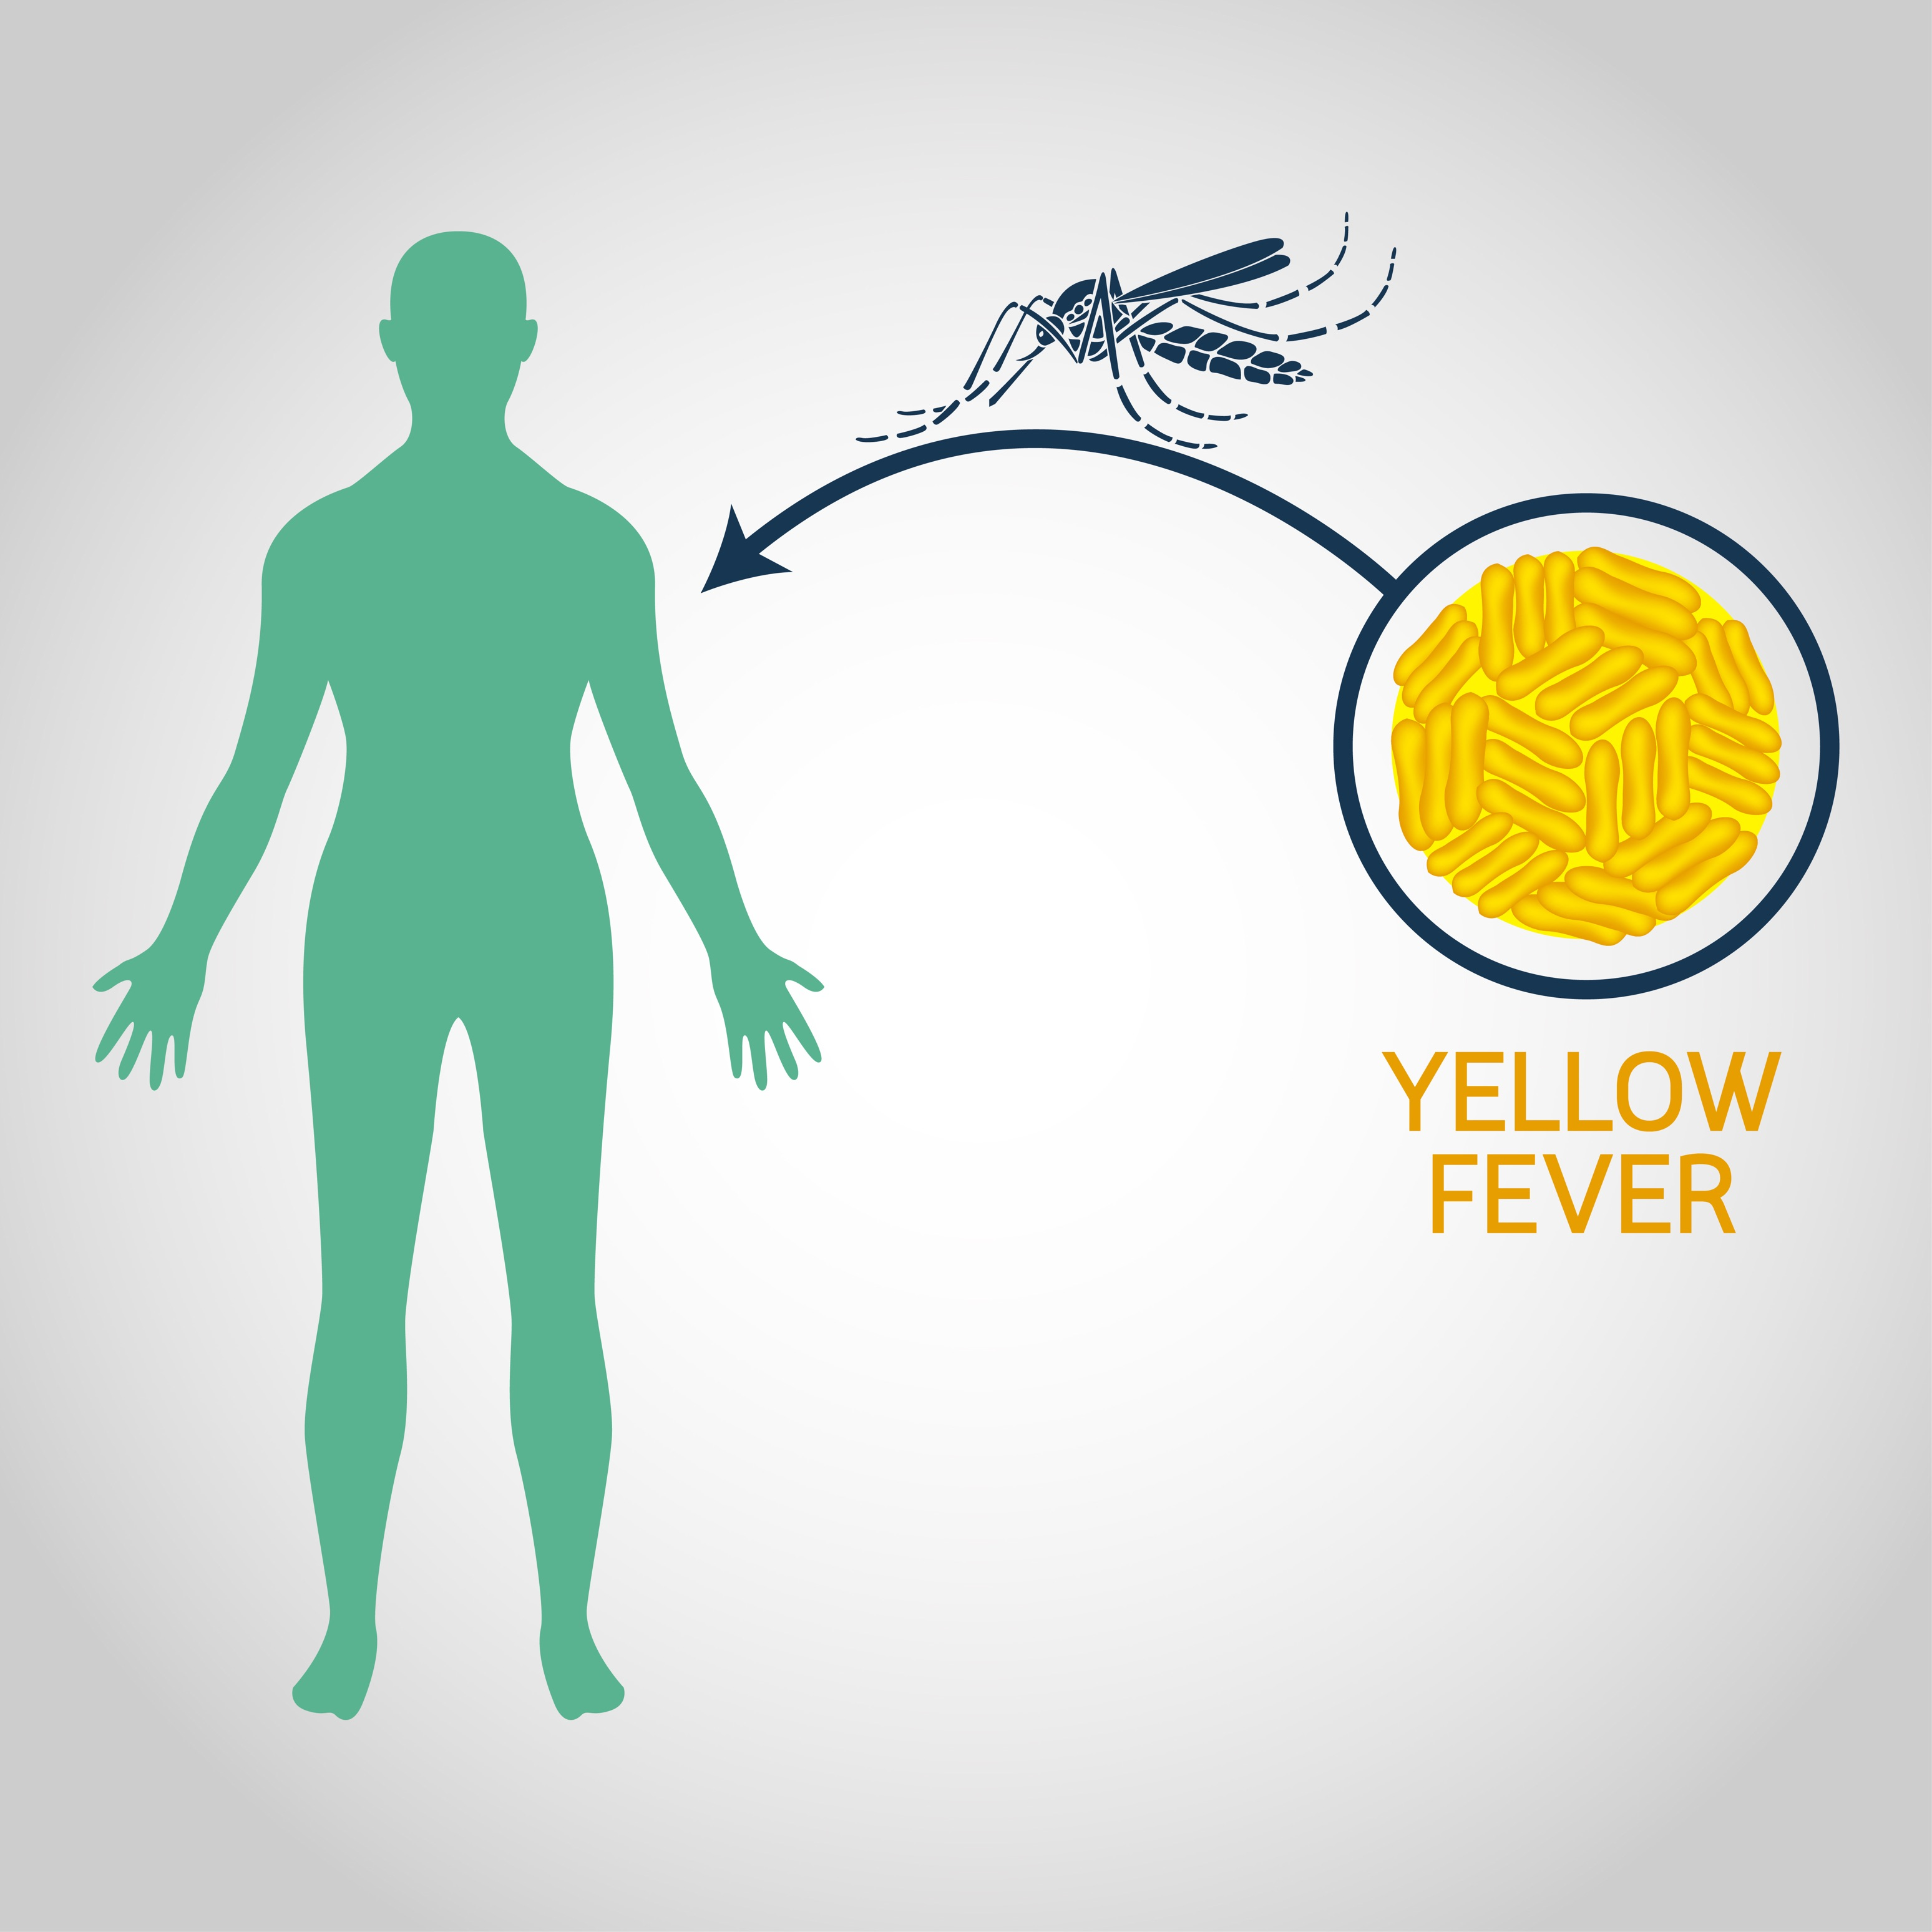 Yellow Fever Market Size, Growth Trends, Share, Regional Outlook Forecast by 2031